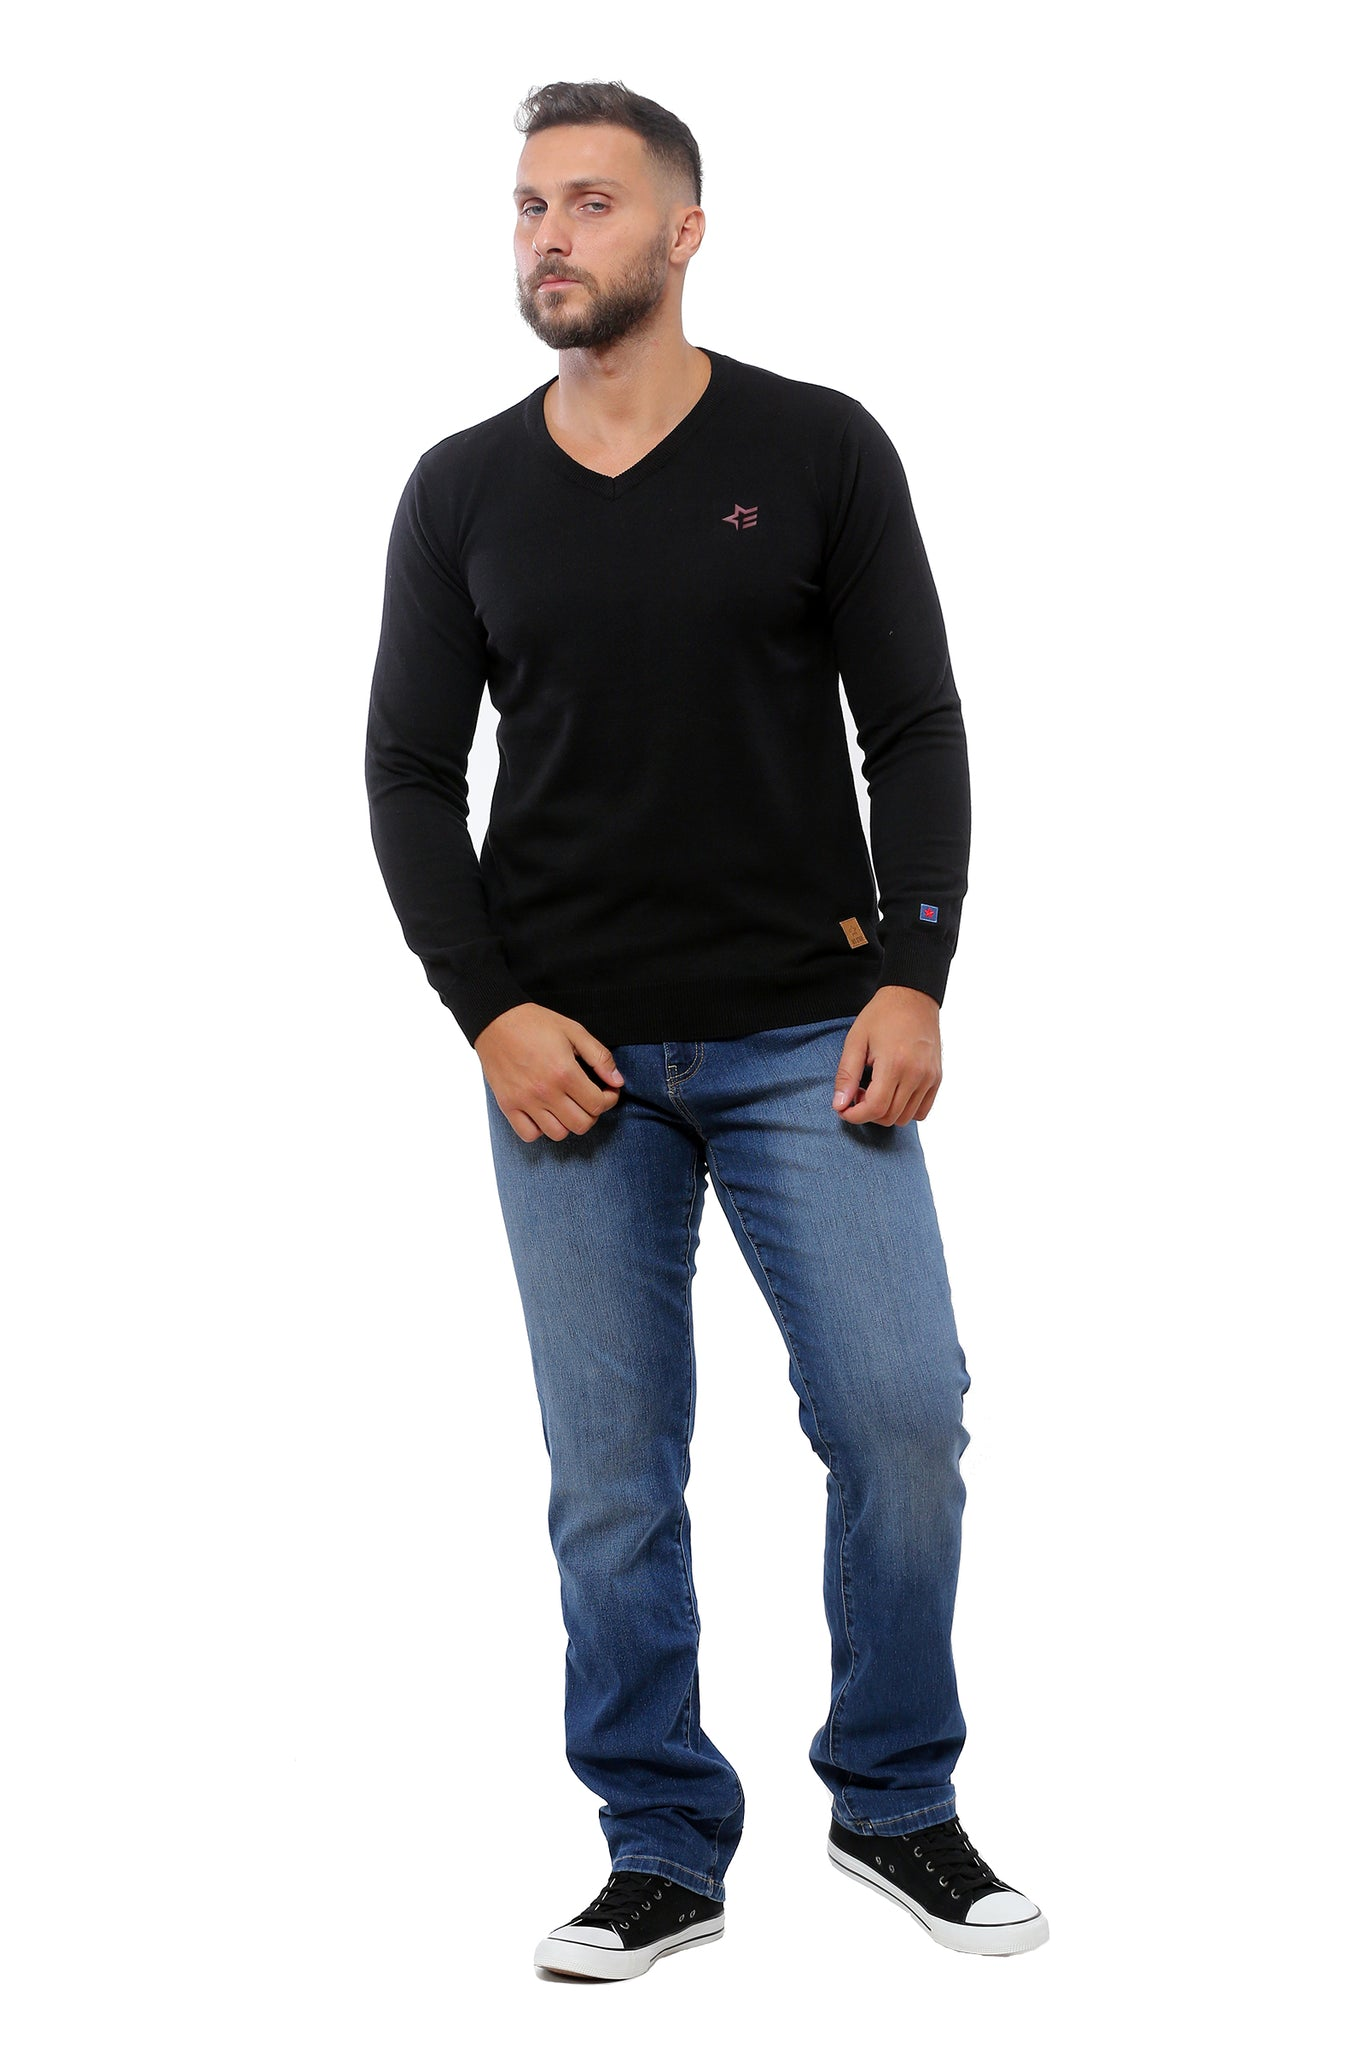 Basic Sweater V-Neck | Black